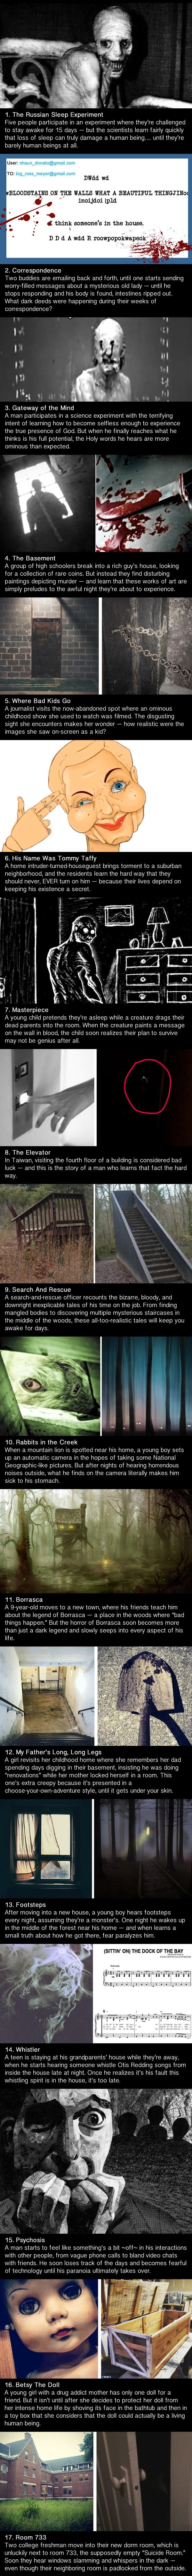 Disturbing internet urban legends